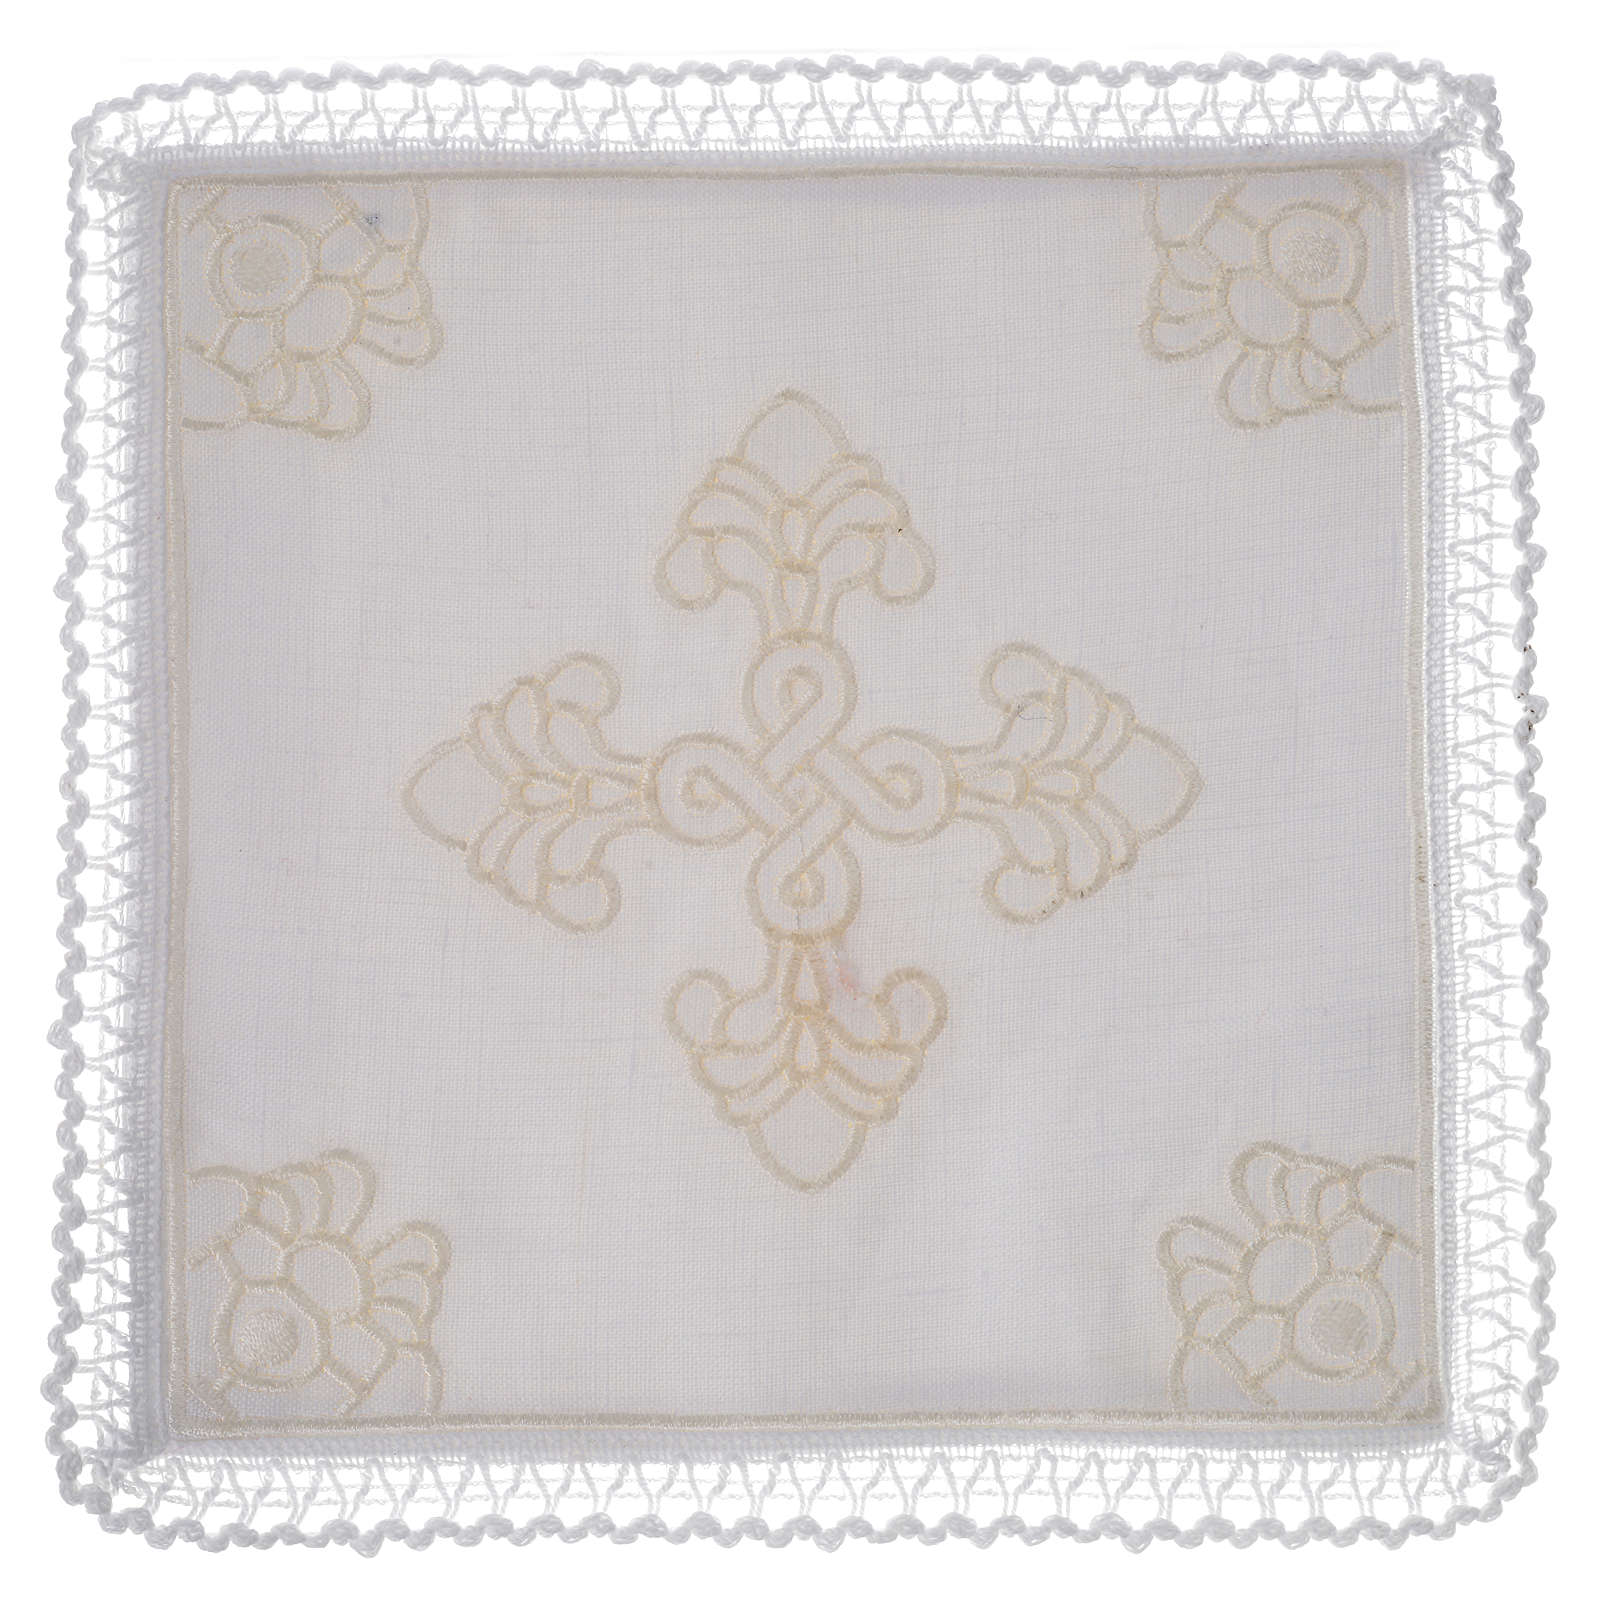 Altar linens, set of 5 in linen and cotton with amice 4